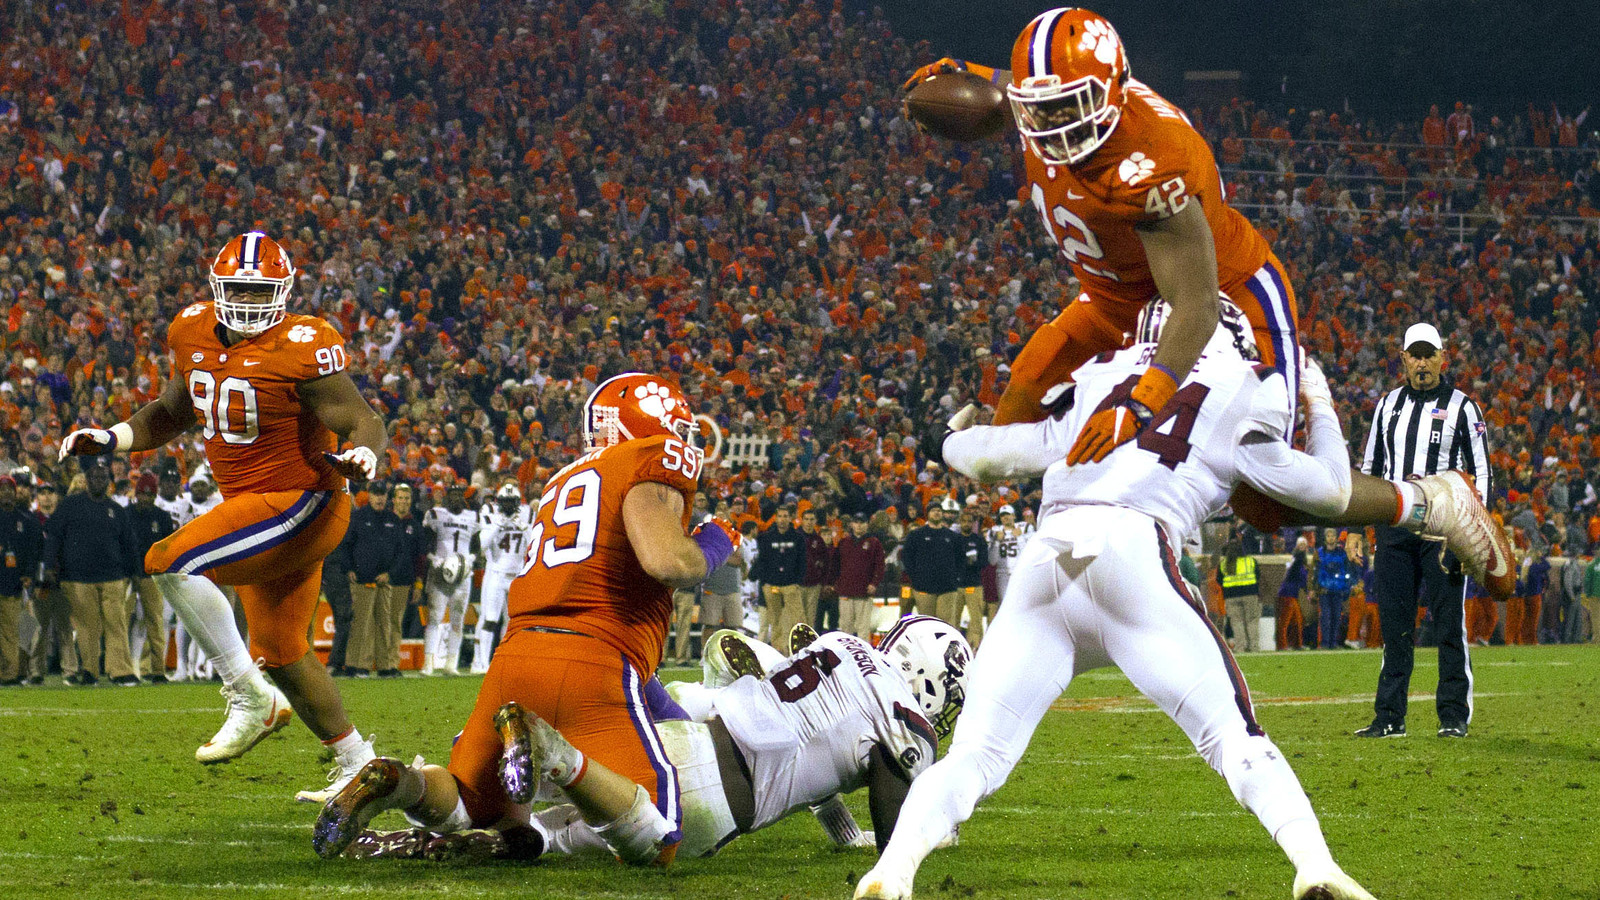 db1a4a0f1 Watch  Clemson s 315-pound DL Christian Wilkins scores on toss sweep ...